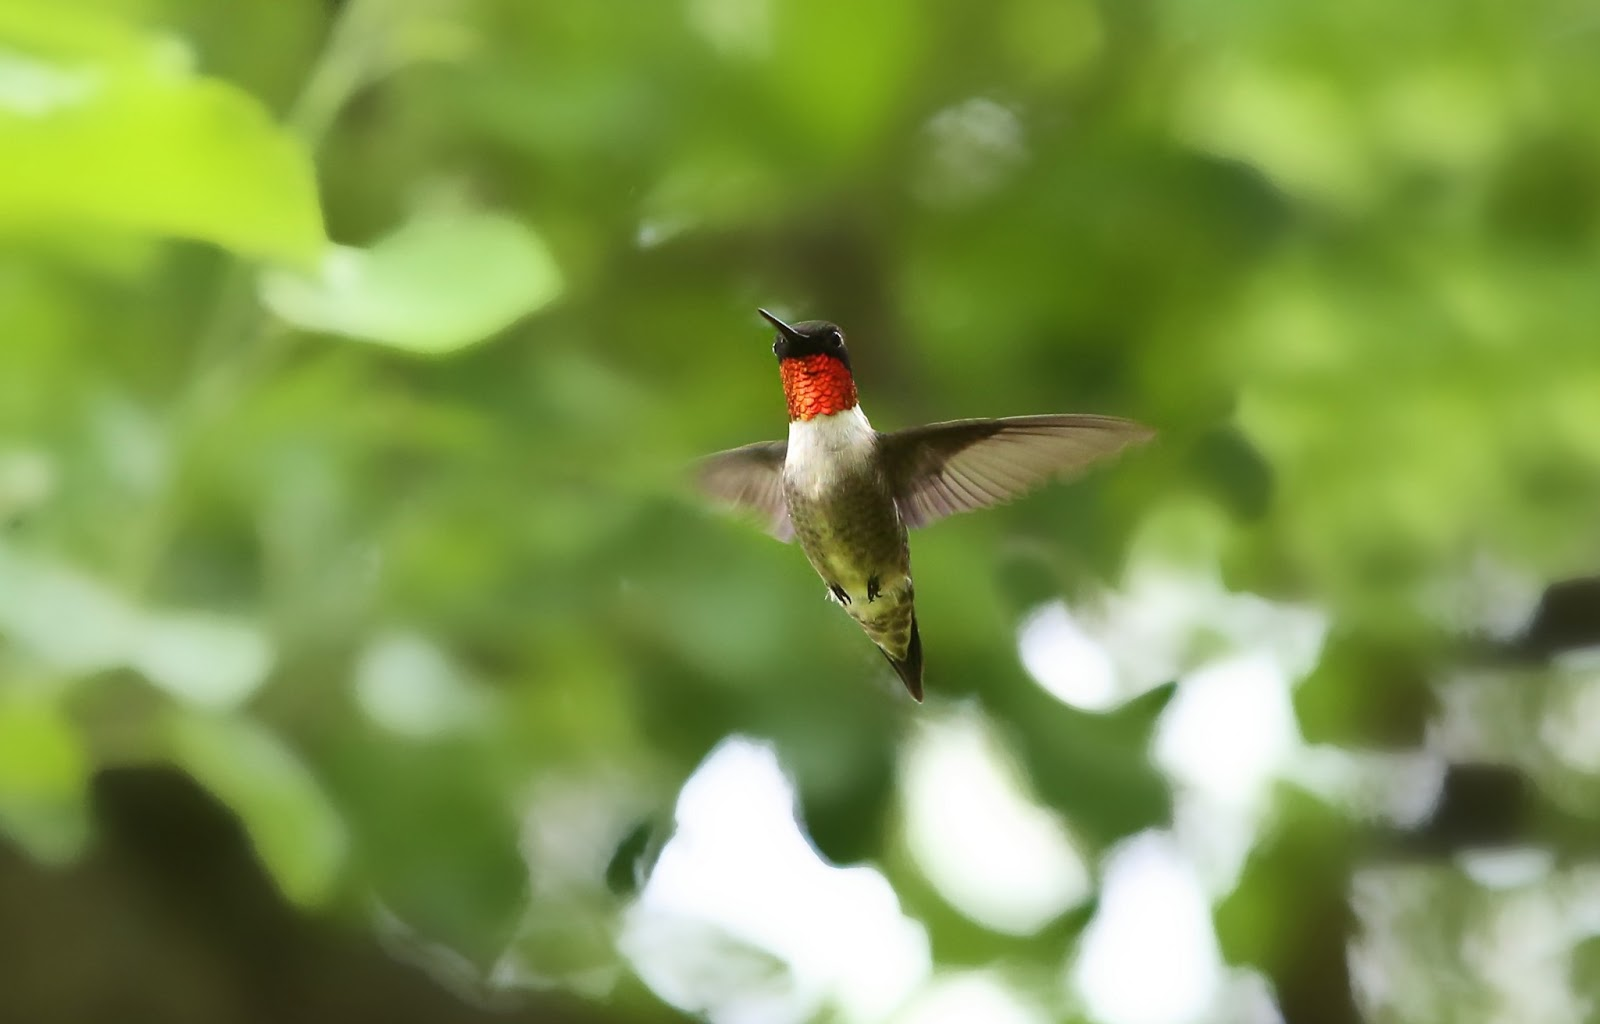 hummingbird hd wallpapers hd wallpapers iphone wallpapers